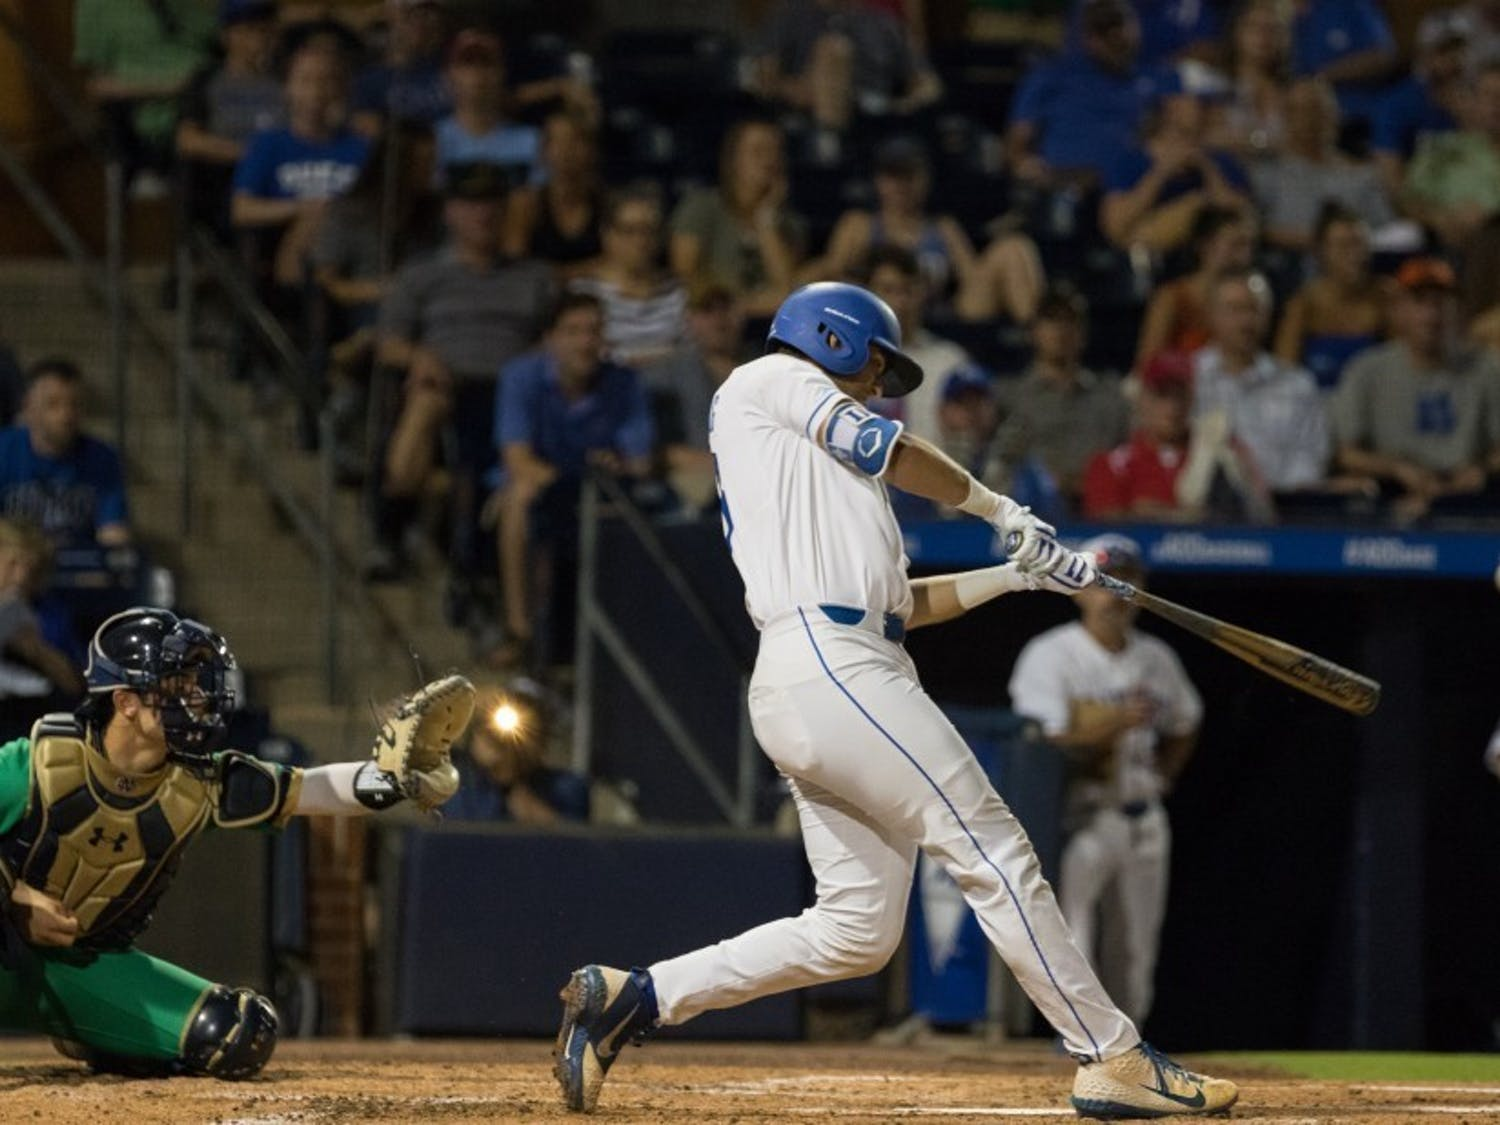 Duke entered this past season coming off two consecutive super regional defeats, both in a do-or-die Game 3.